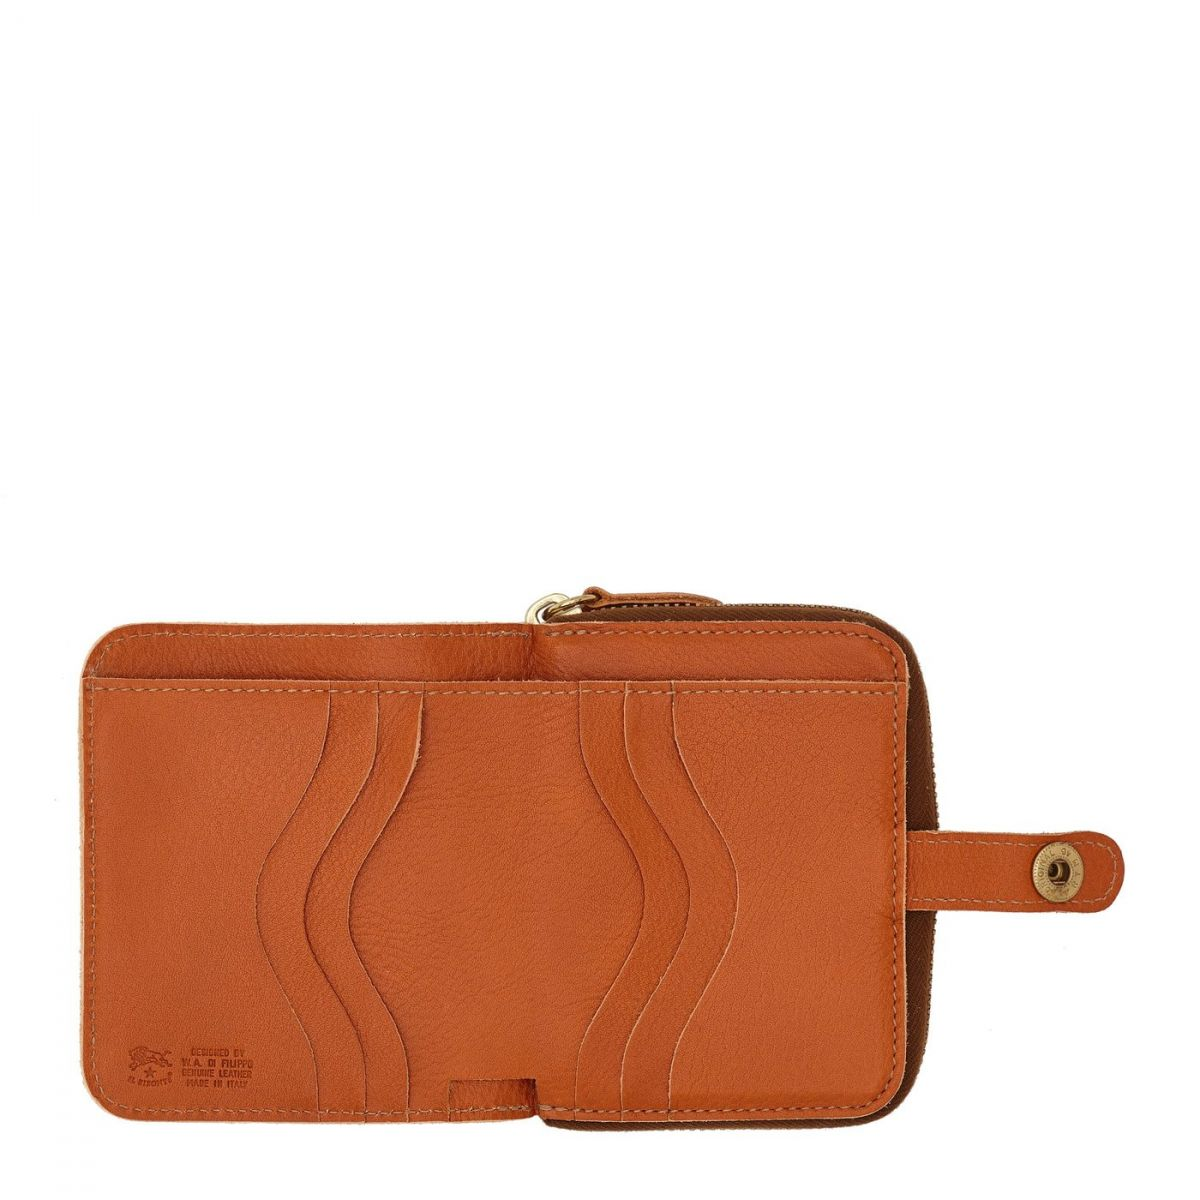 Wallet  in Cowhide Double Leather SMW049 color Caramel | Details